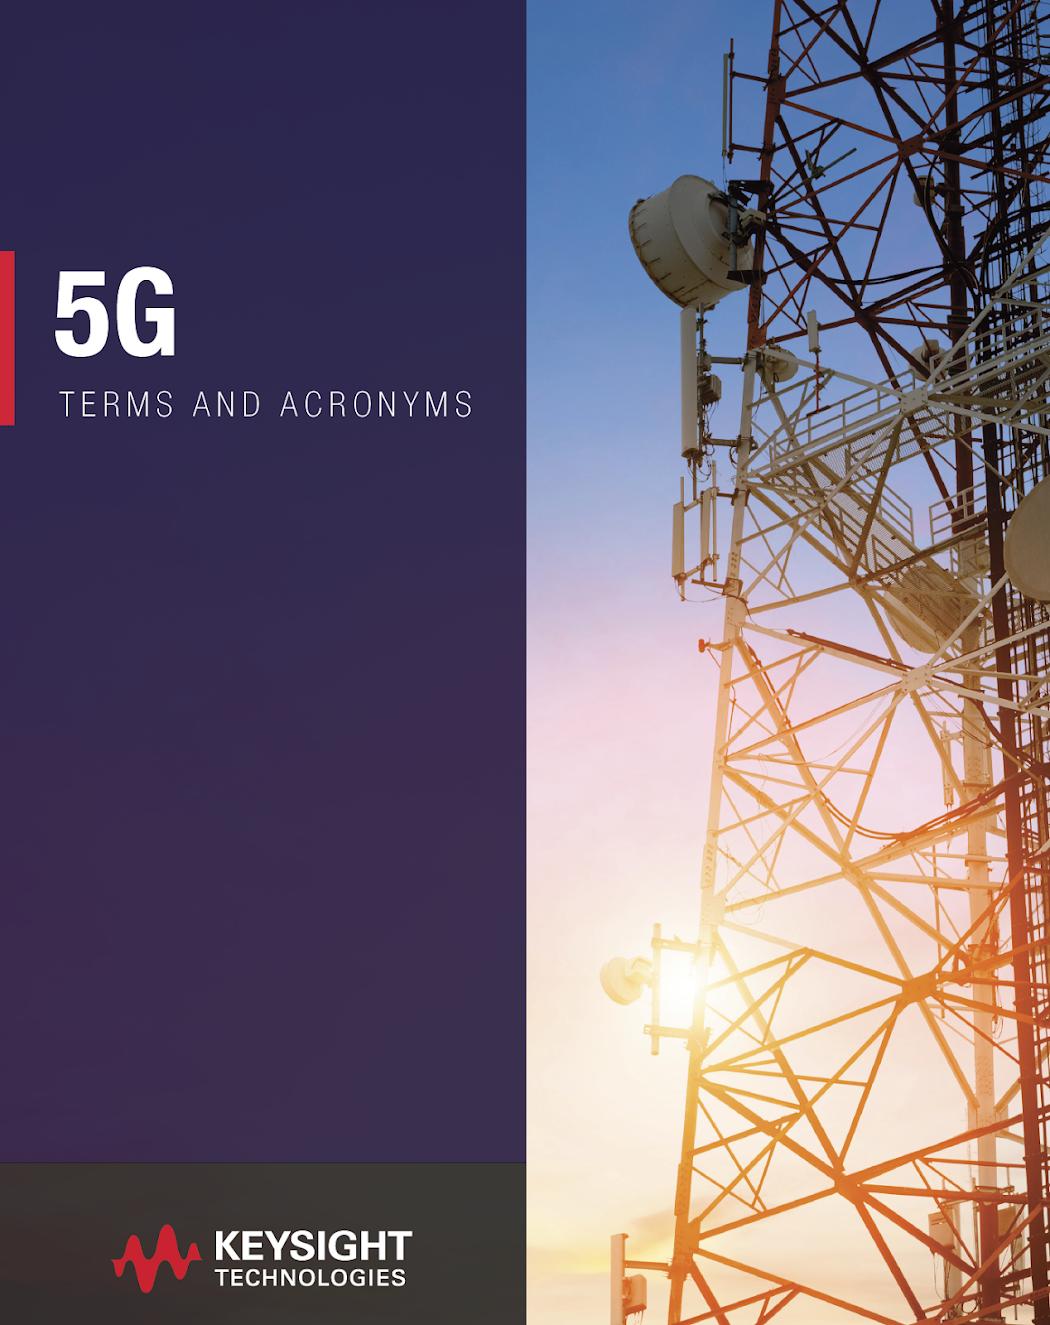 Master 5G Terms and Acronyms